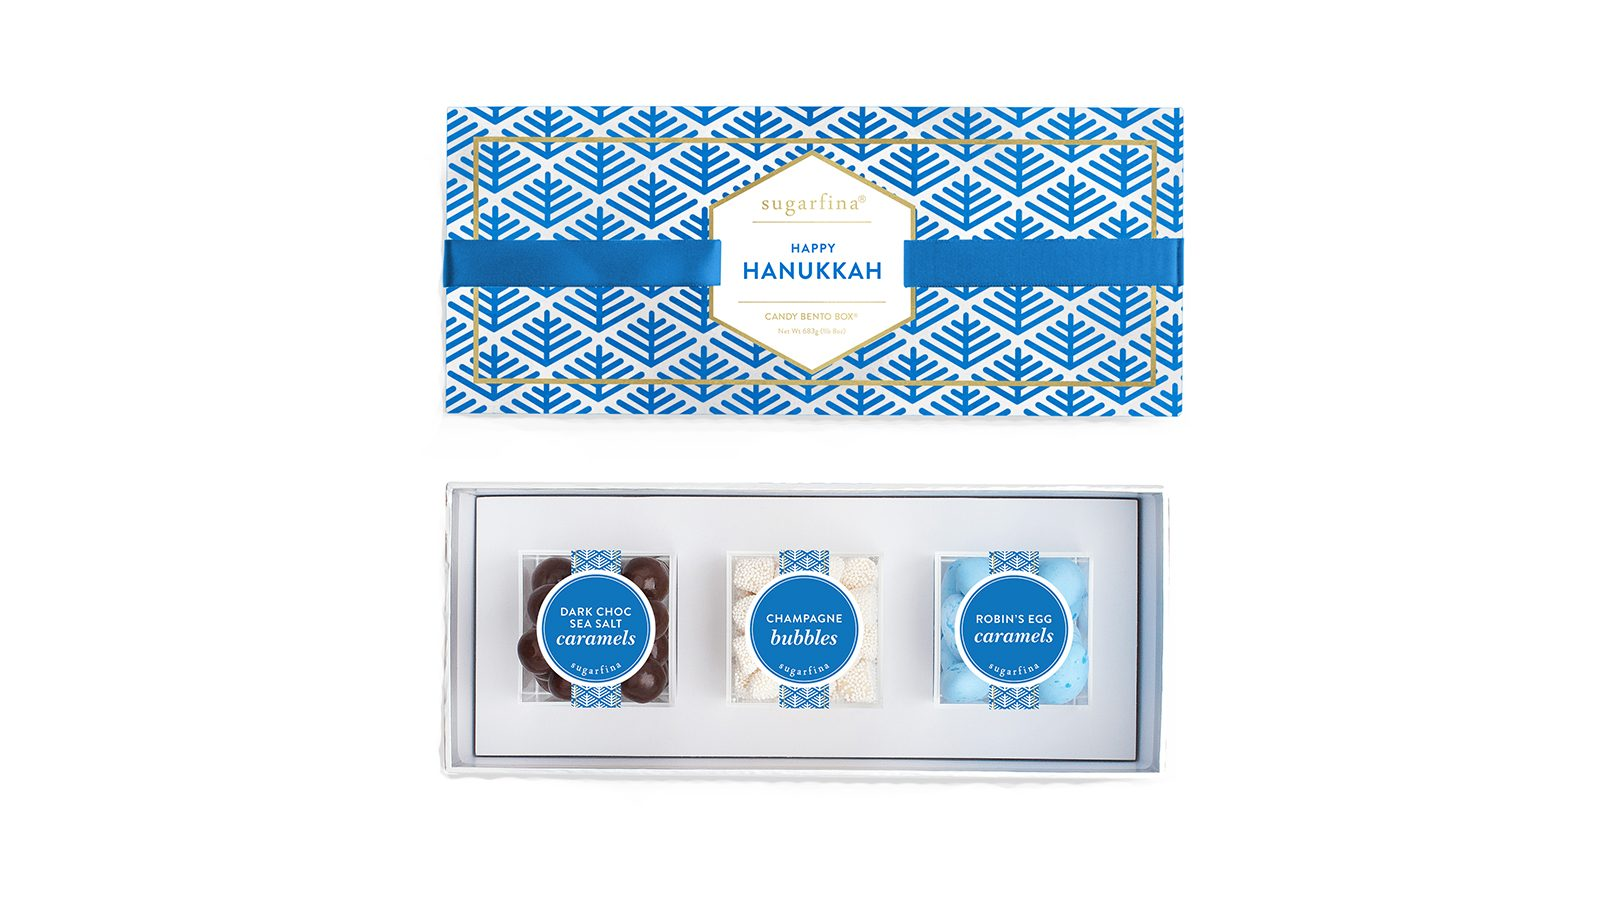 Holiday foods Sugarfina Happy Haunukkah Candy Bento Box